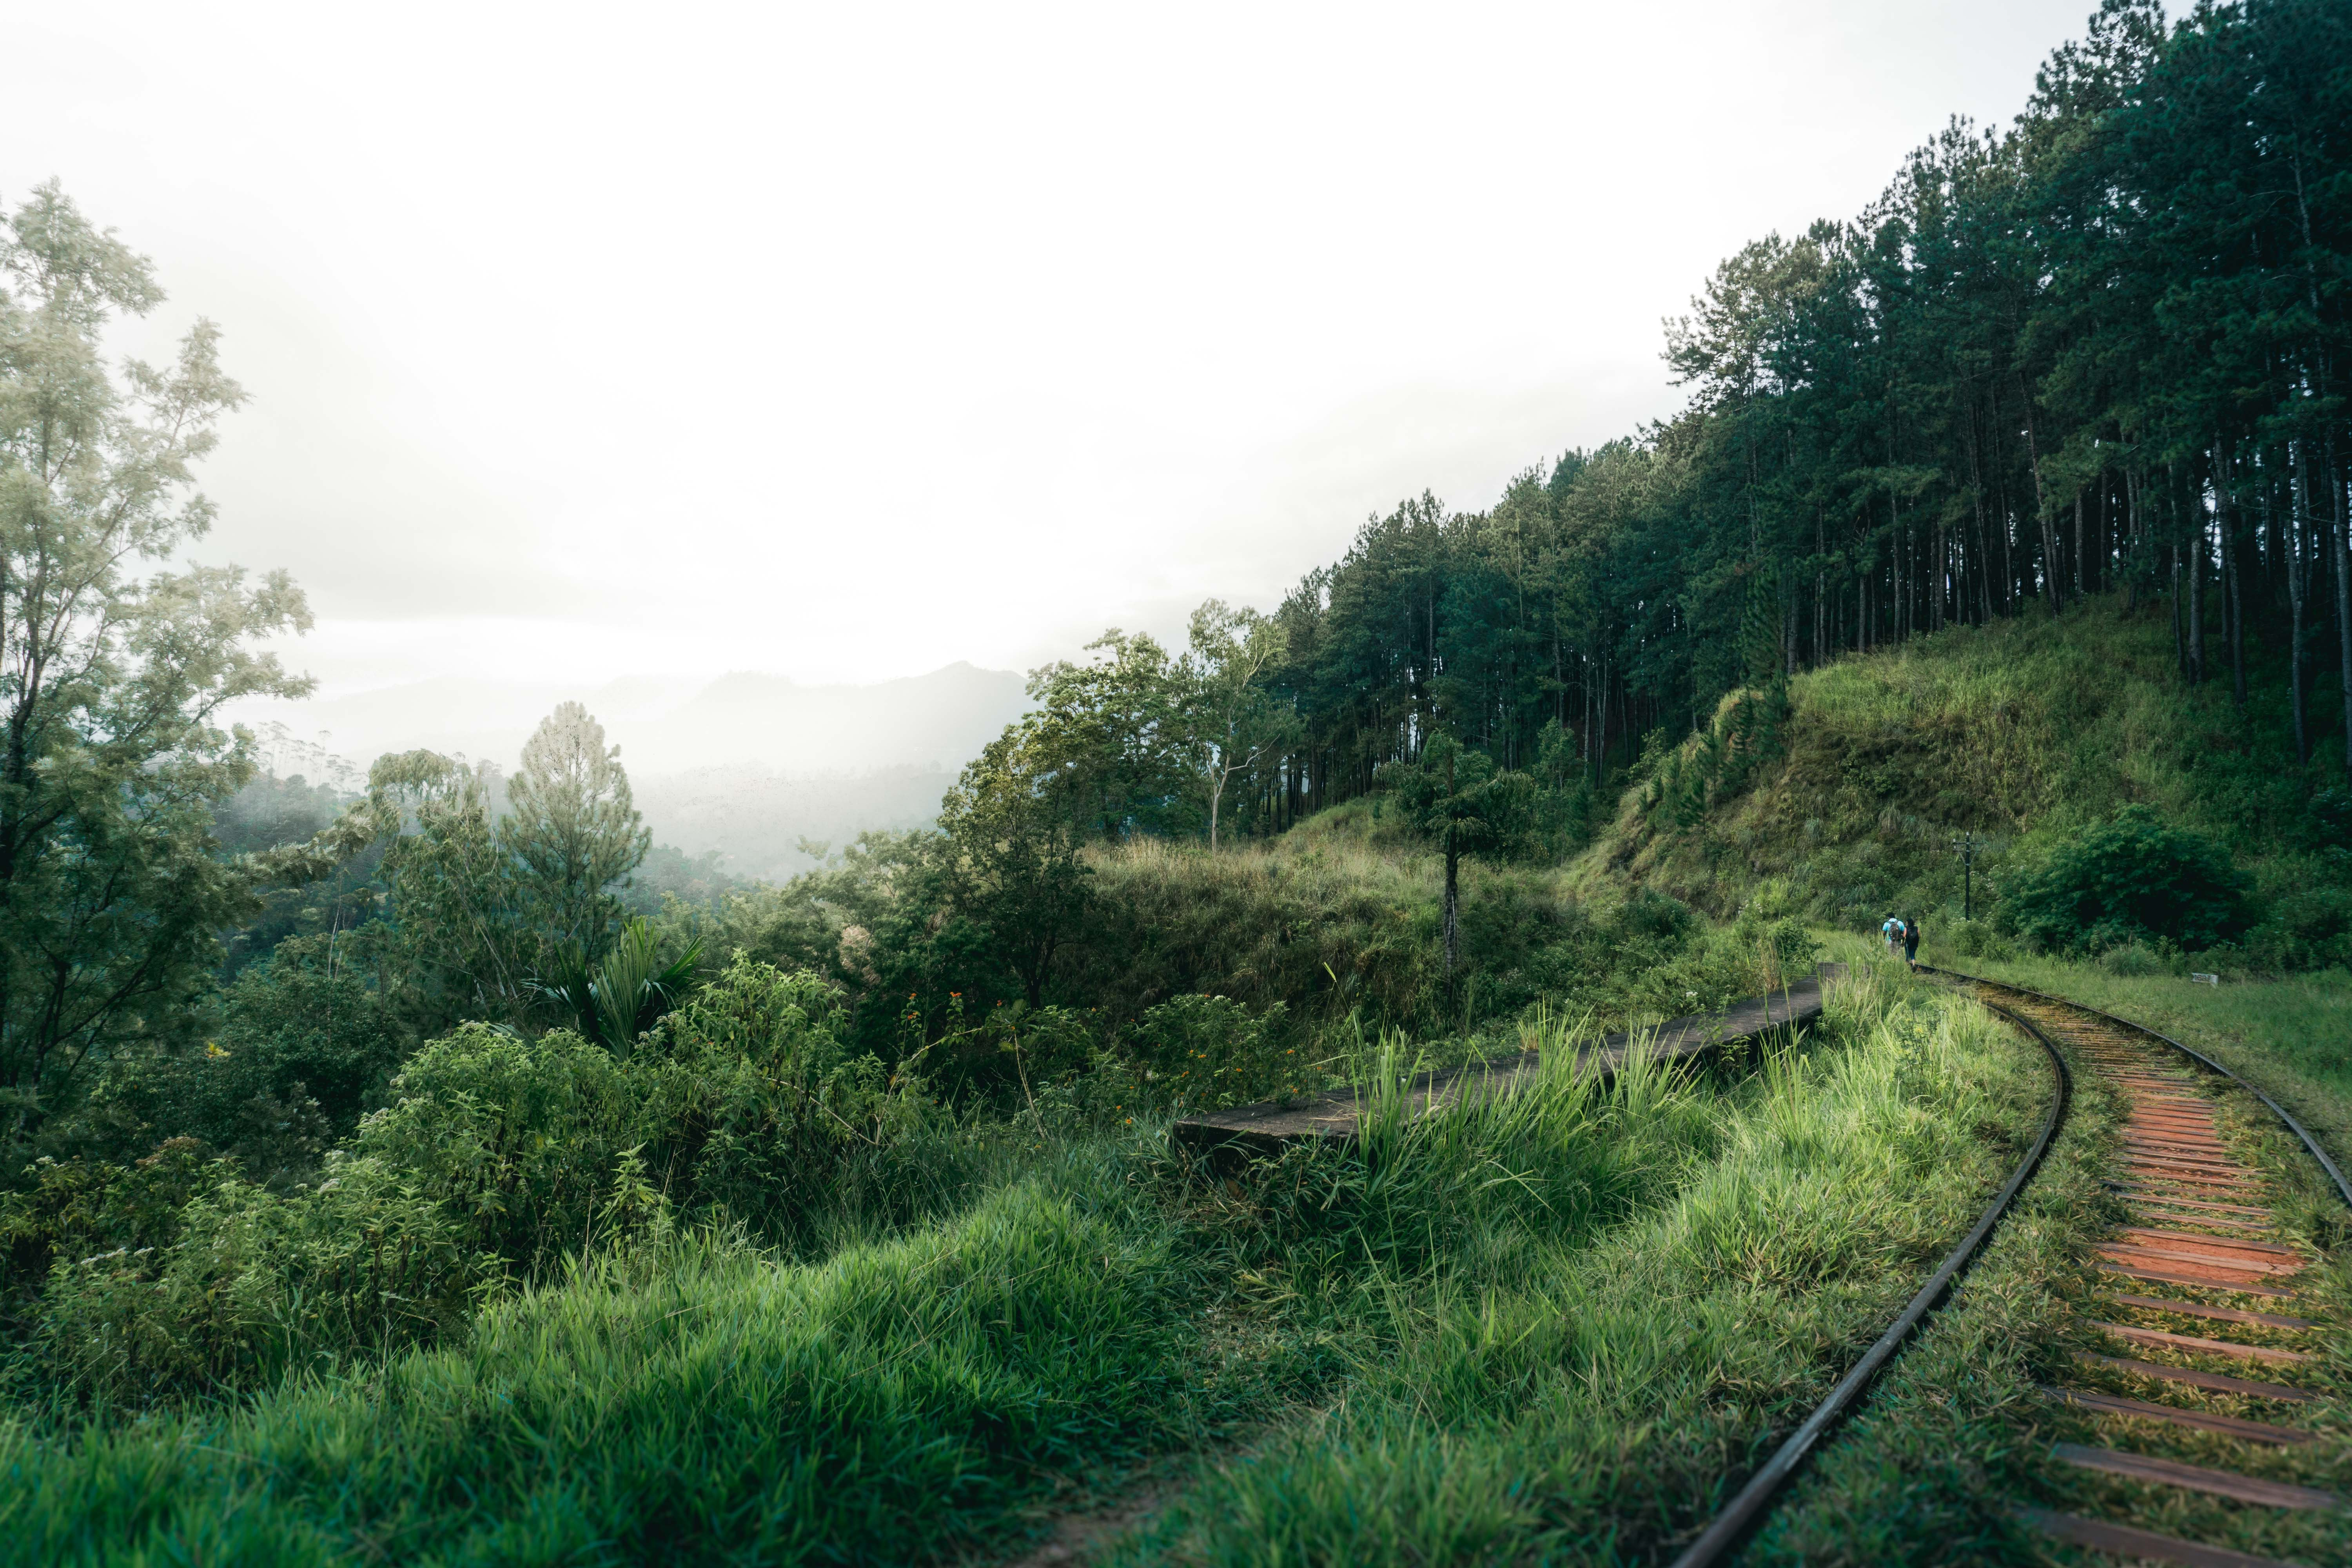 photography of railway near forest